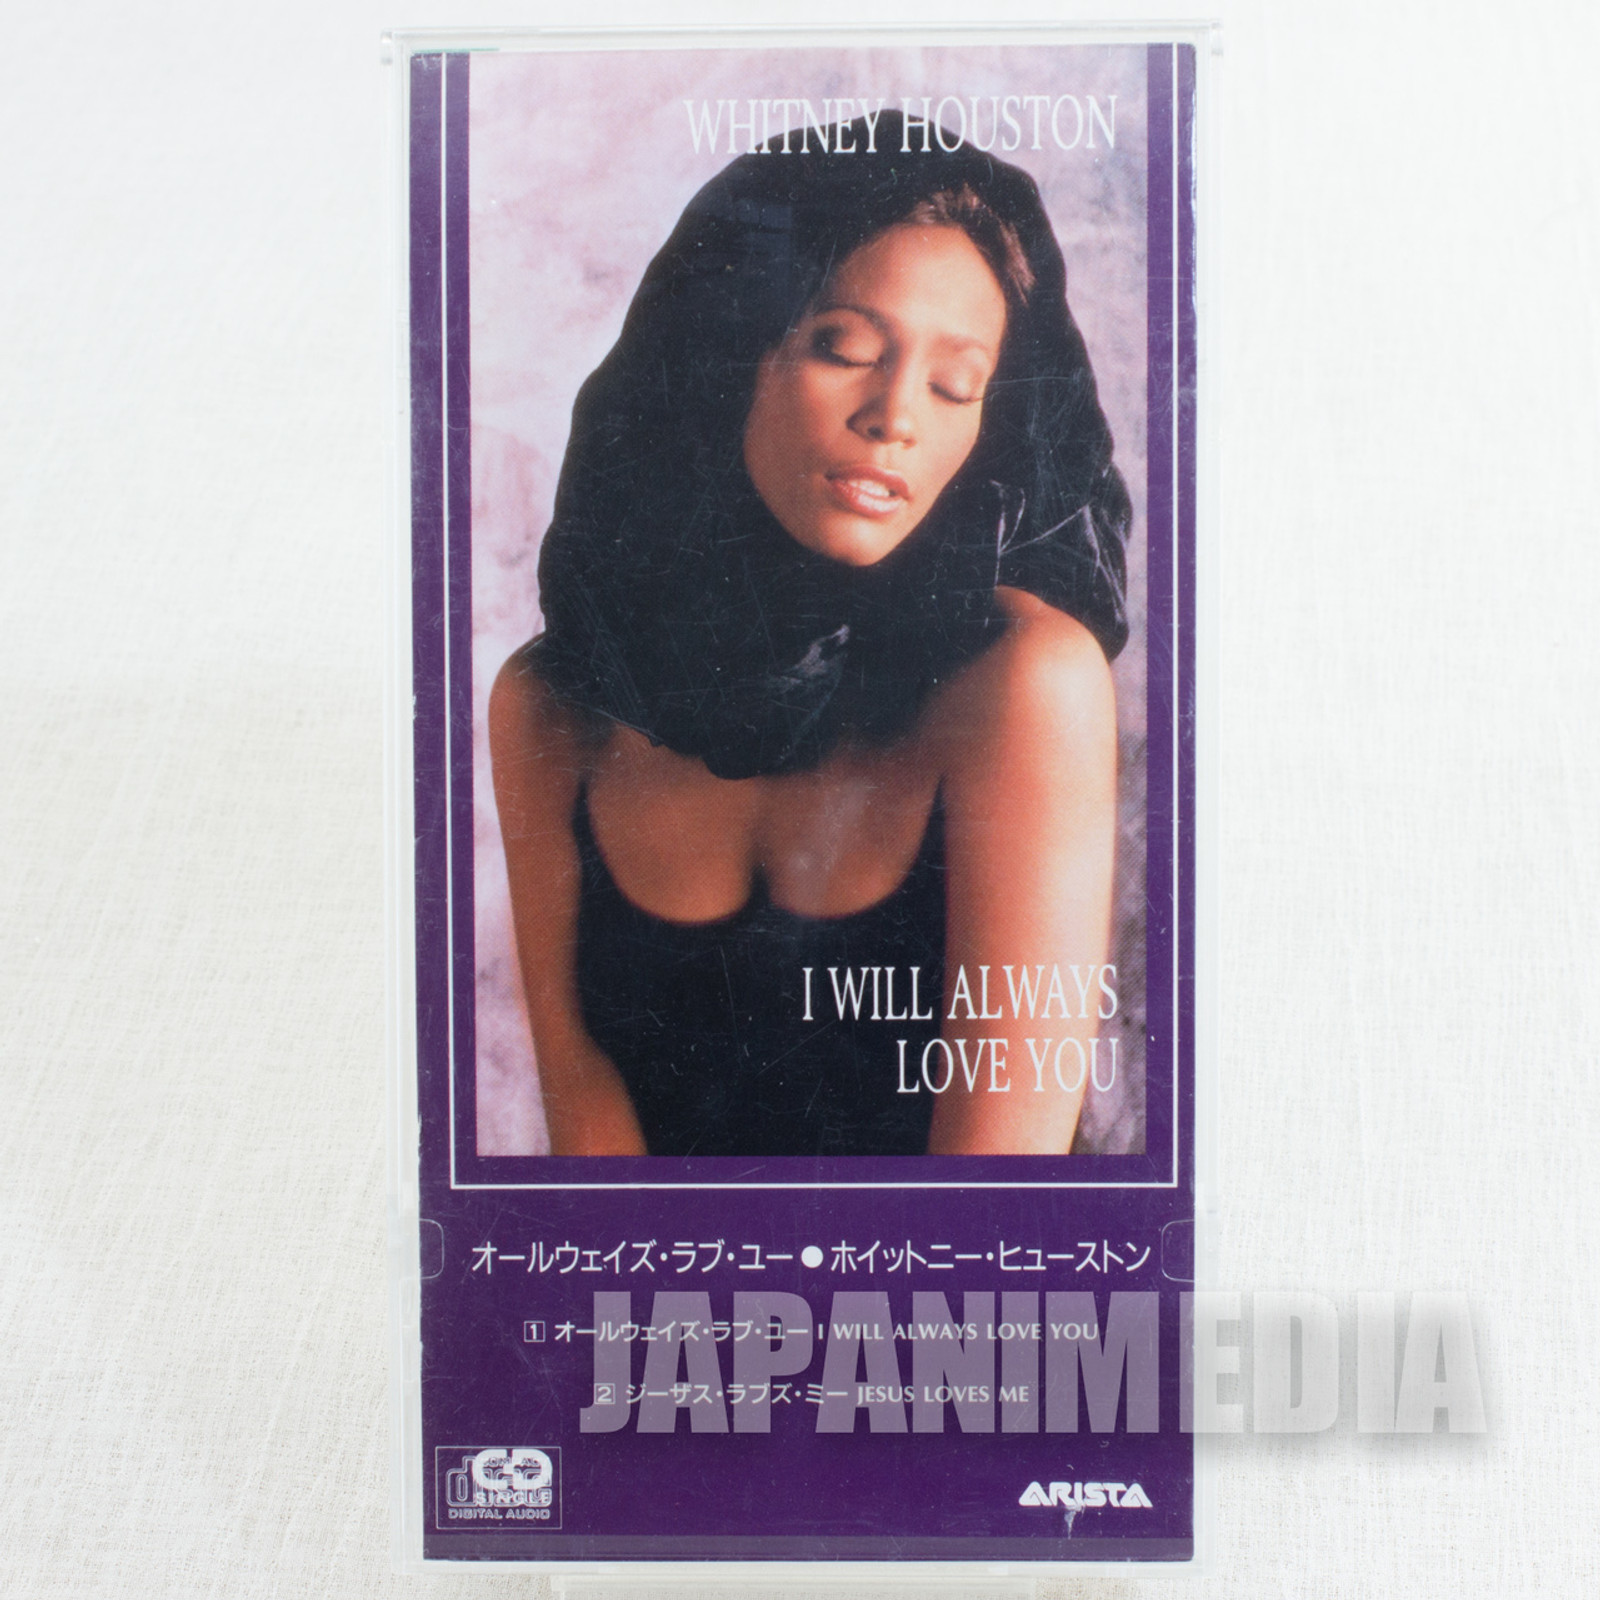 WHITNEY HOUSTON i will always love you JAPAN 3INCH 8cm Single CD